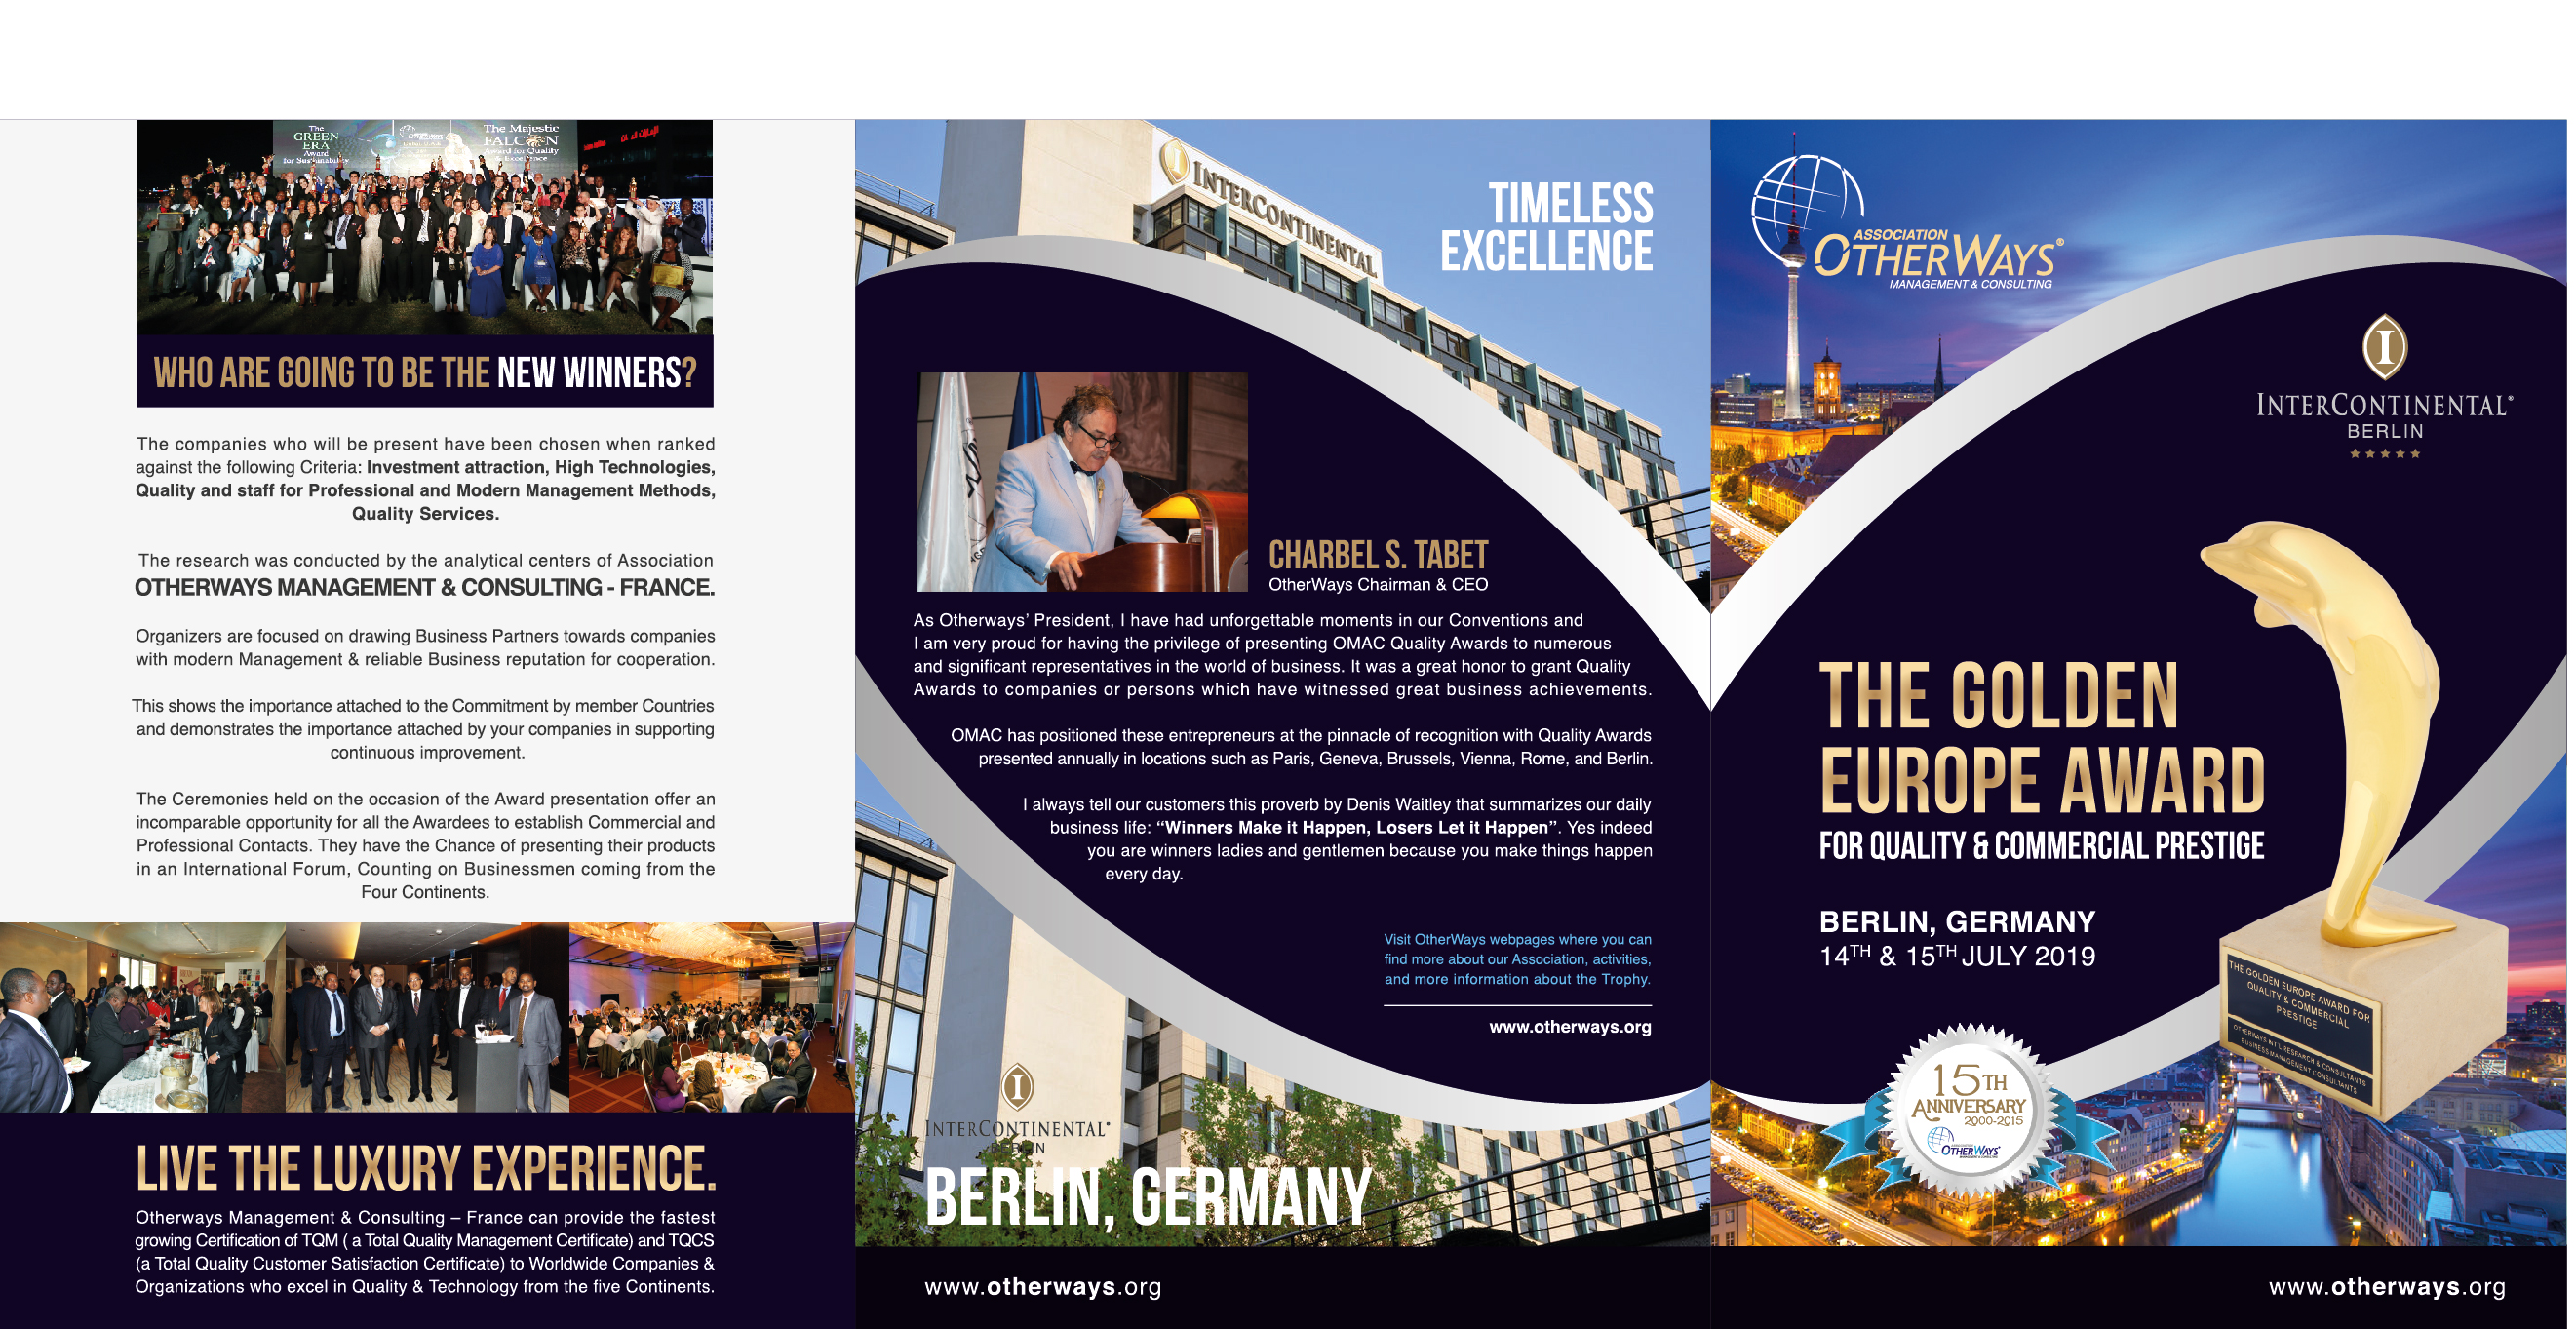 The Golden Europe Award For Quality & Commercial Prestige 14th – 15th July 2019 Berlin – Germany – Brochure